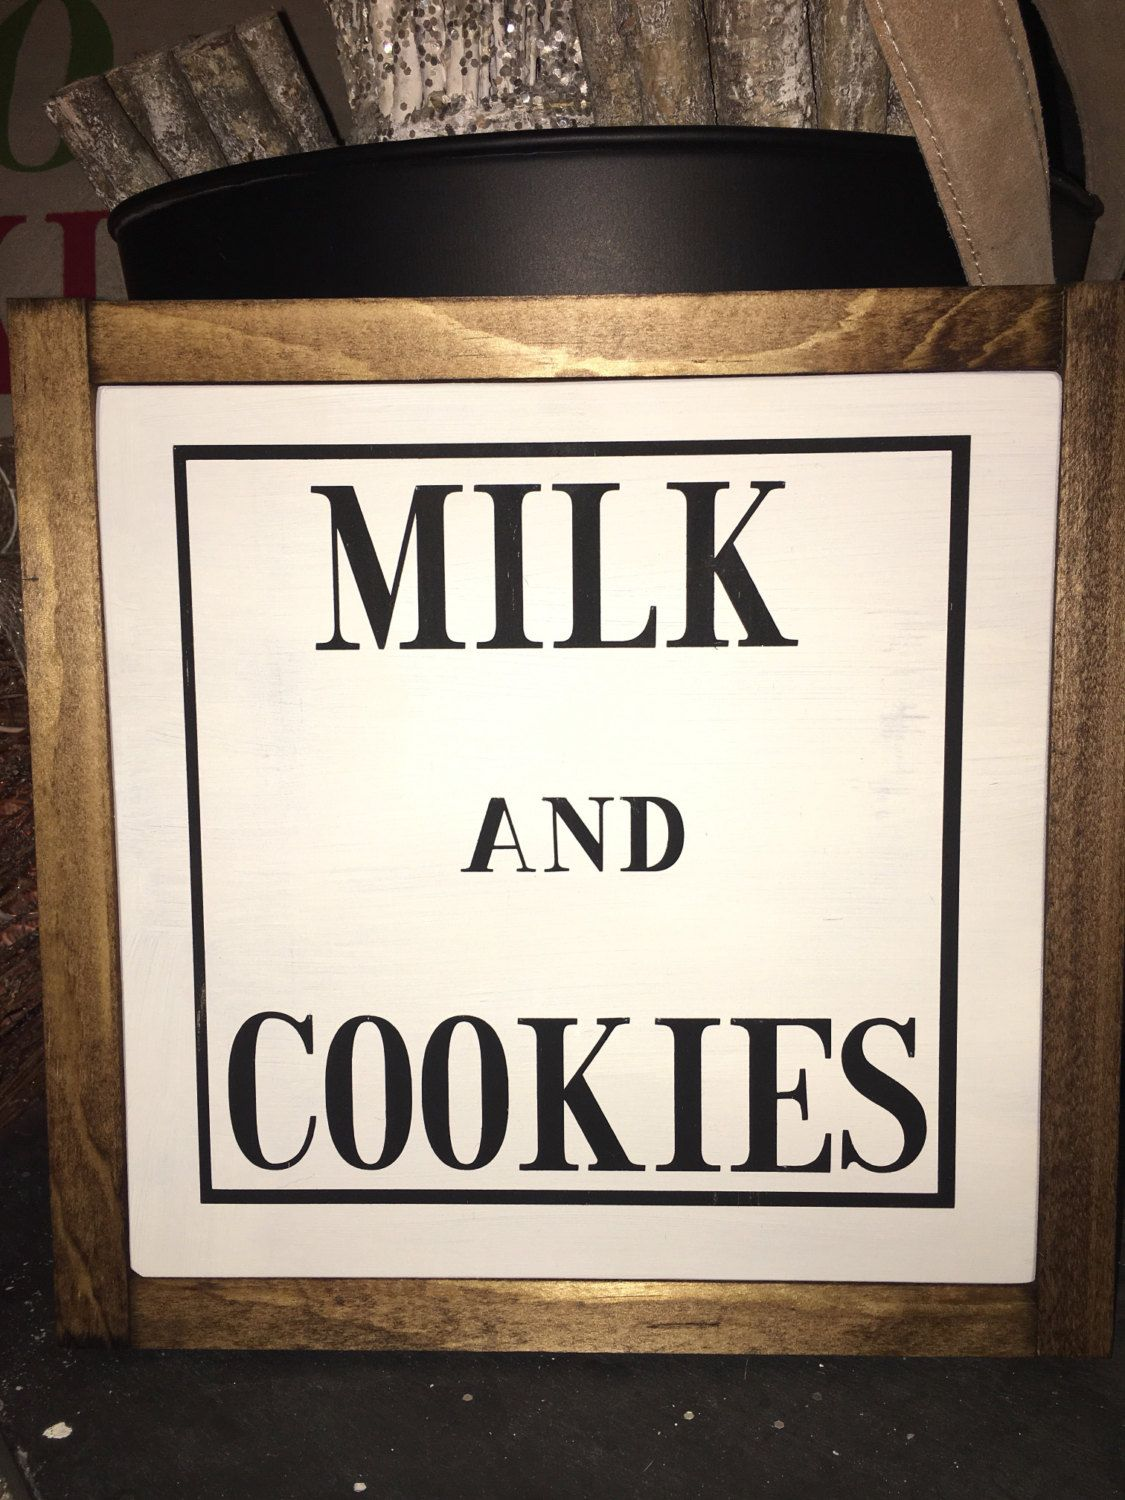 MILK AND COOKIES - Santa - Christmas - Kitchen - Rustic Decor - Home - Cozy - kids - family Handmade Painted Sign by Flippinugly on Etsy